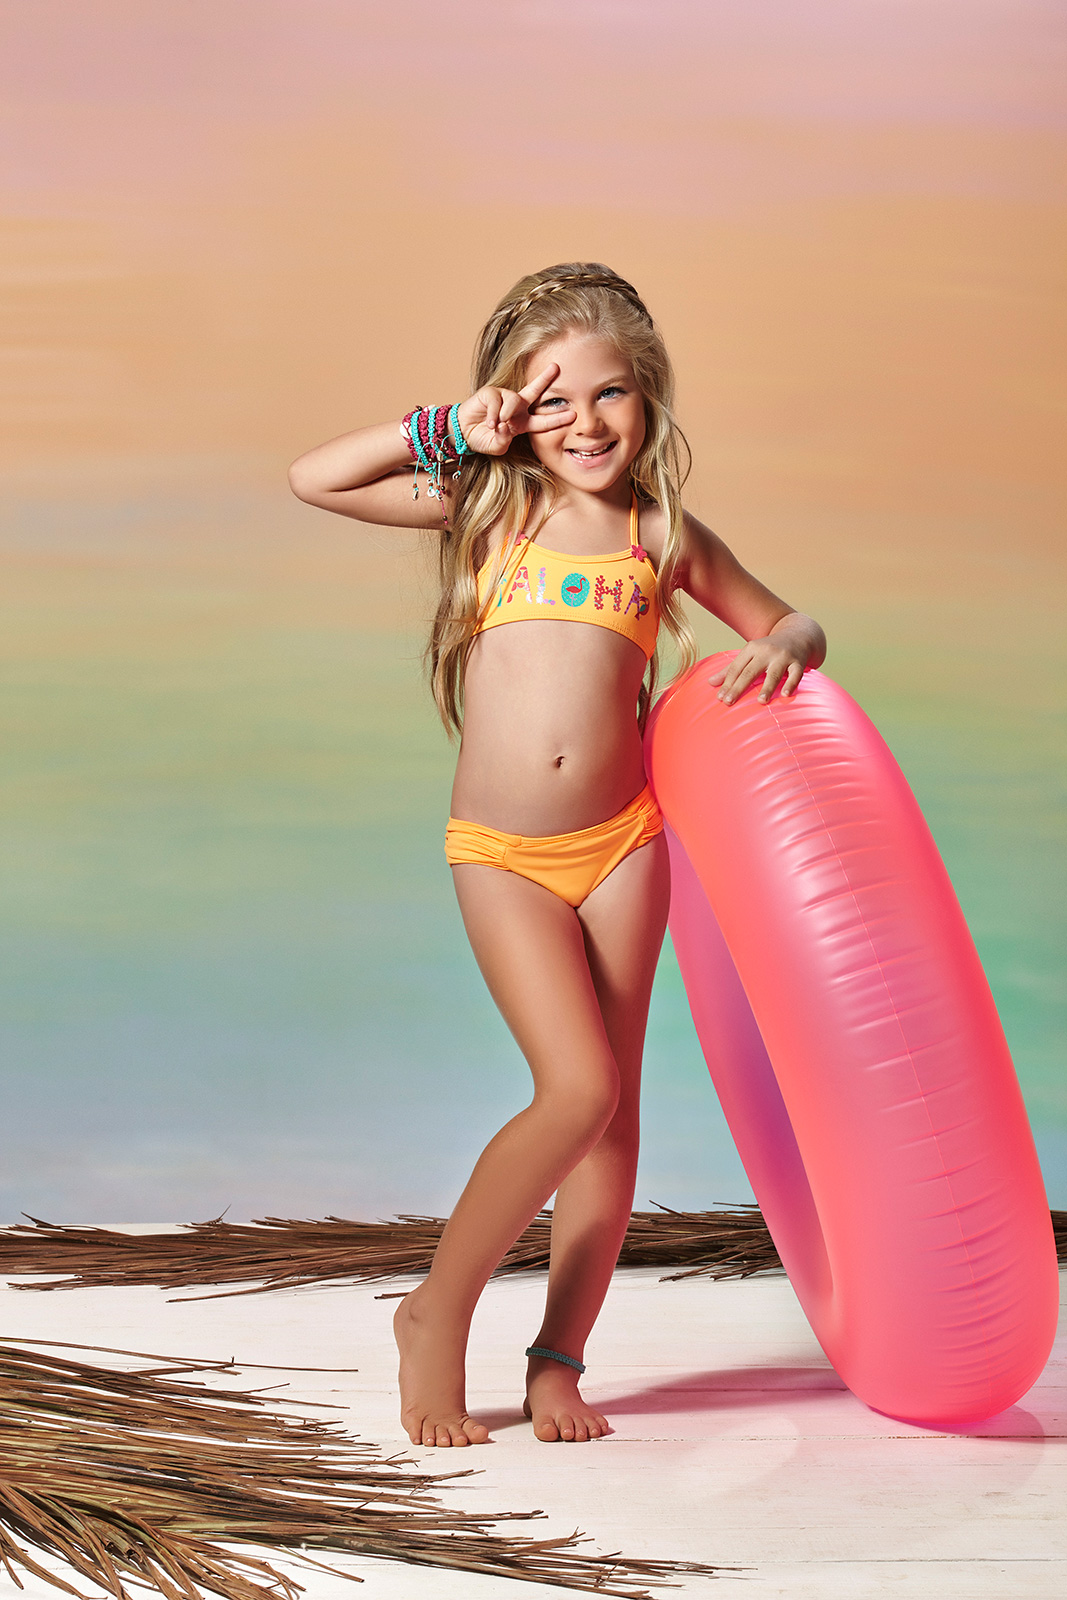 Requinho Little Girls Orange Two Piece Swimsuit Aloha Coral